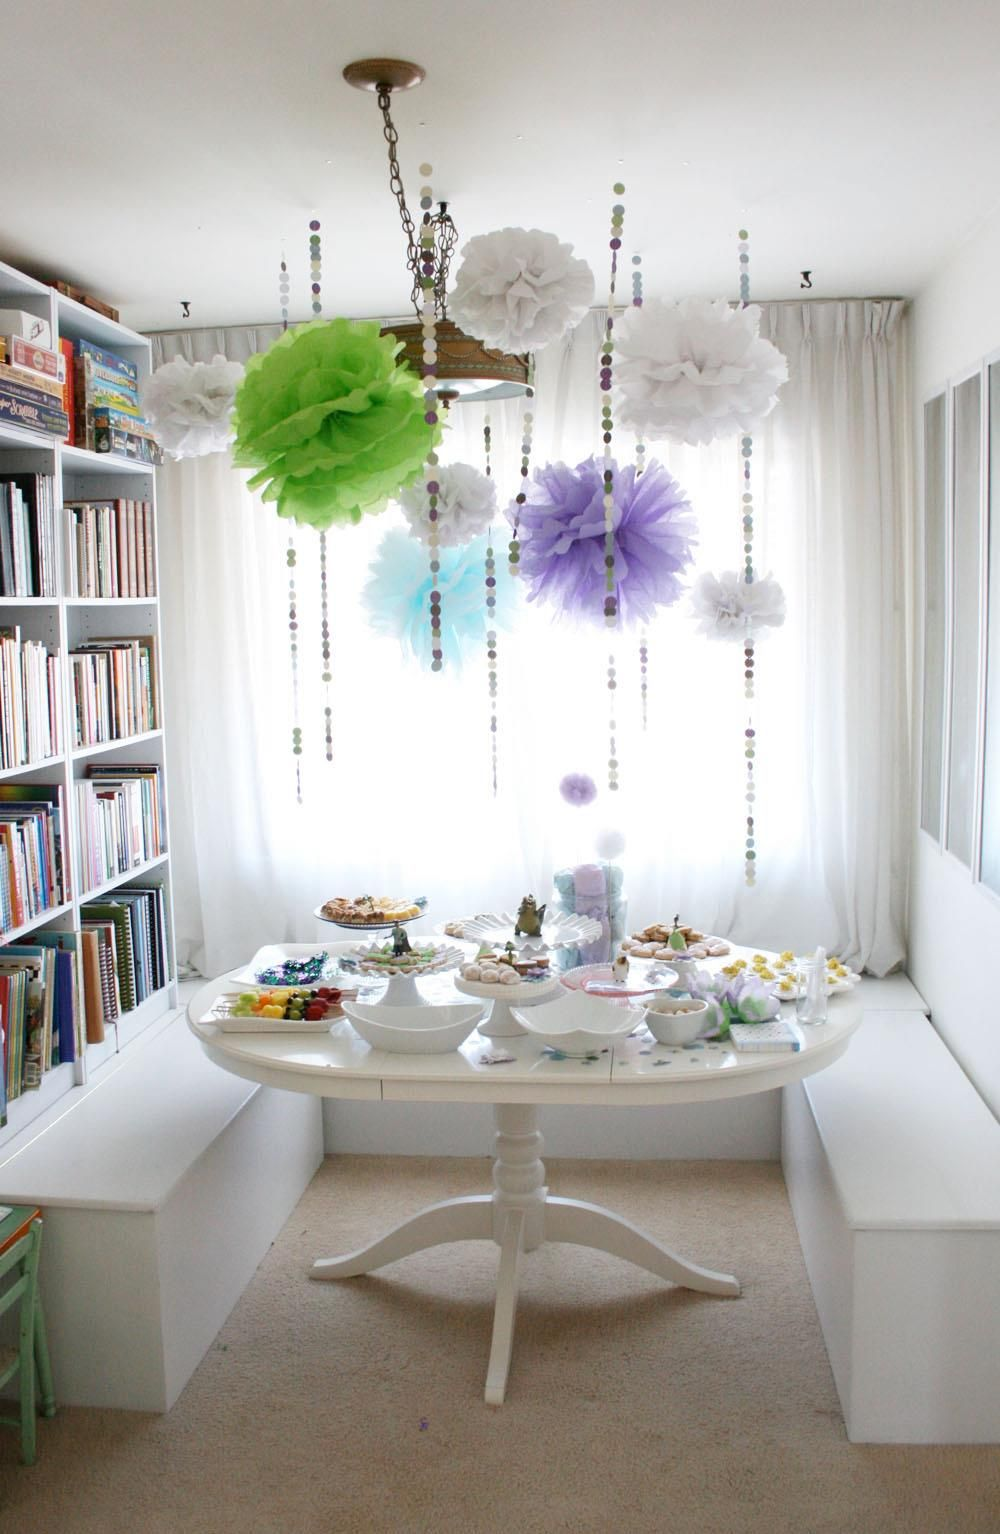 Inspiring Ideas For Stunning Table Decorations For Birthdays : Excellent  Decorations Design : Stunning Interior Design With Amusing Table Decorations  For ...